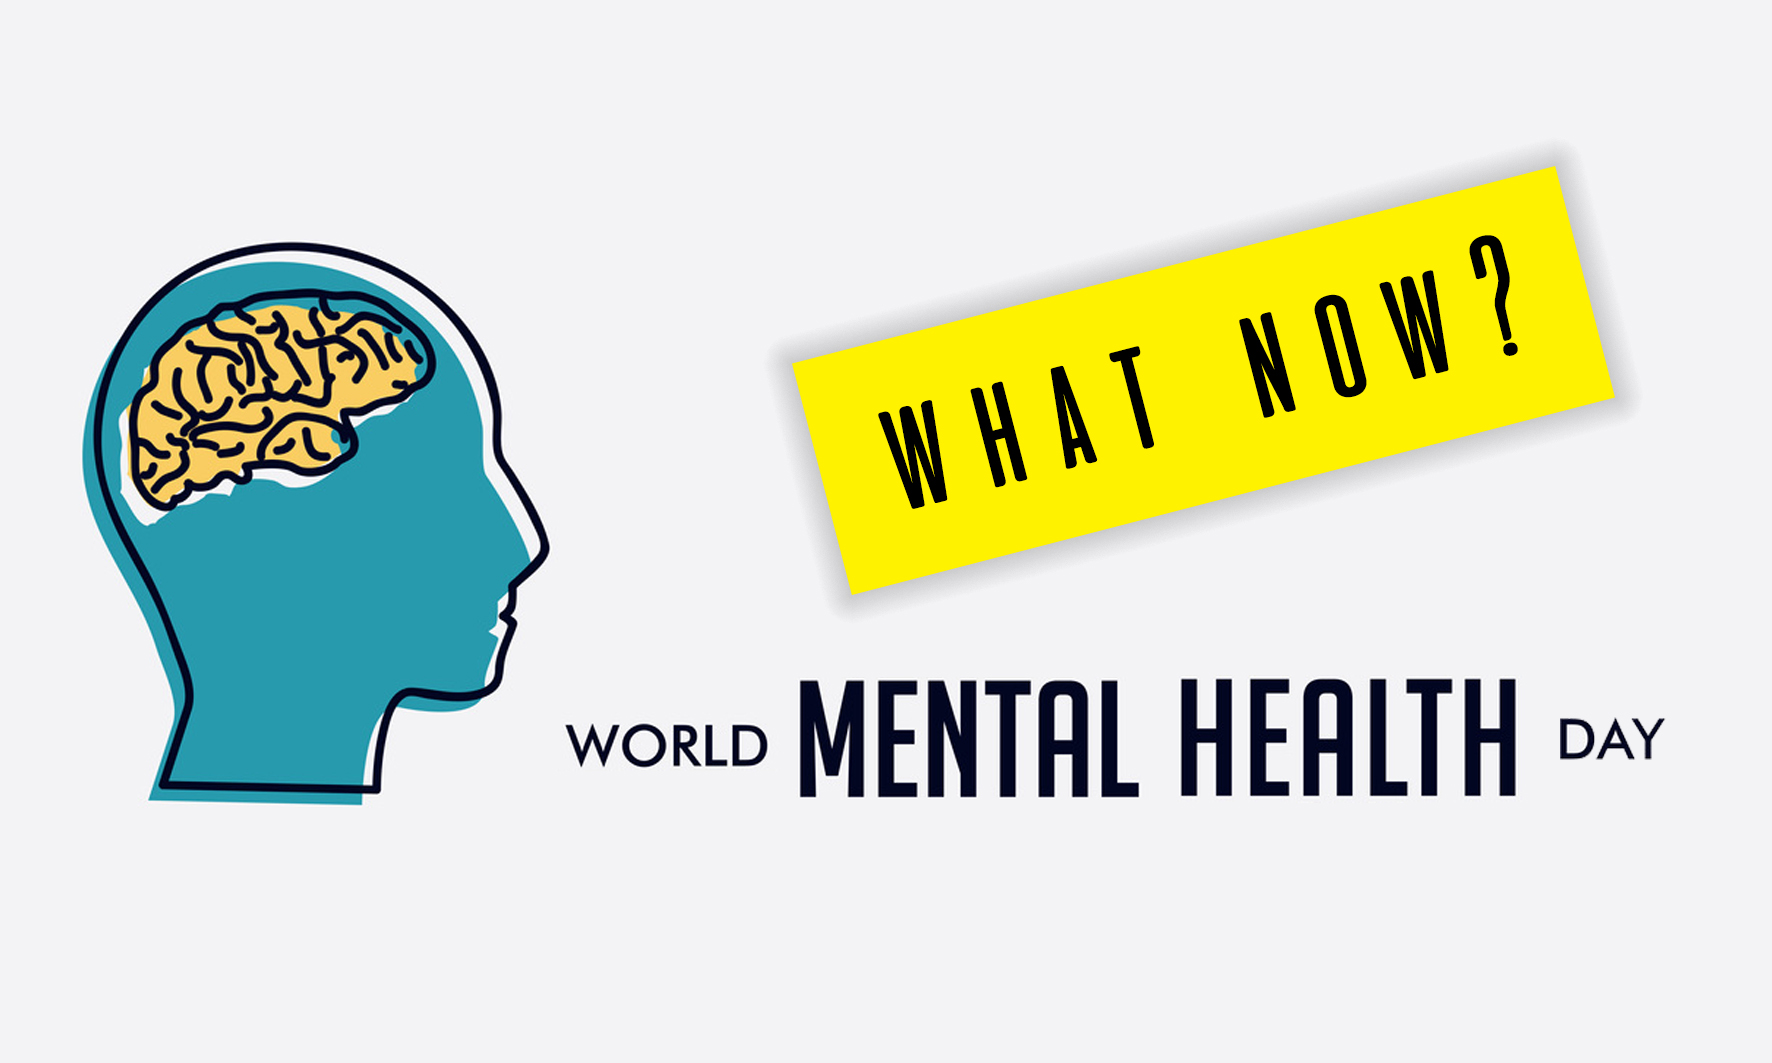 3 Things We Can Learn From World Mental Health Day